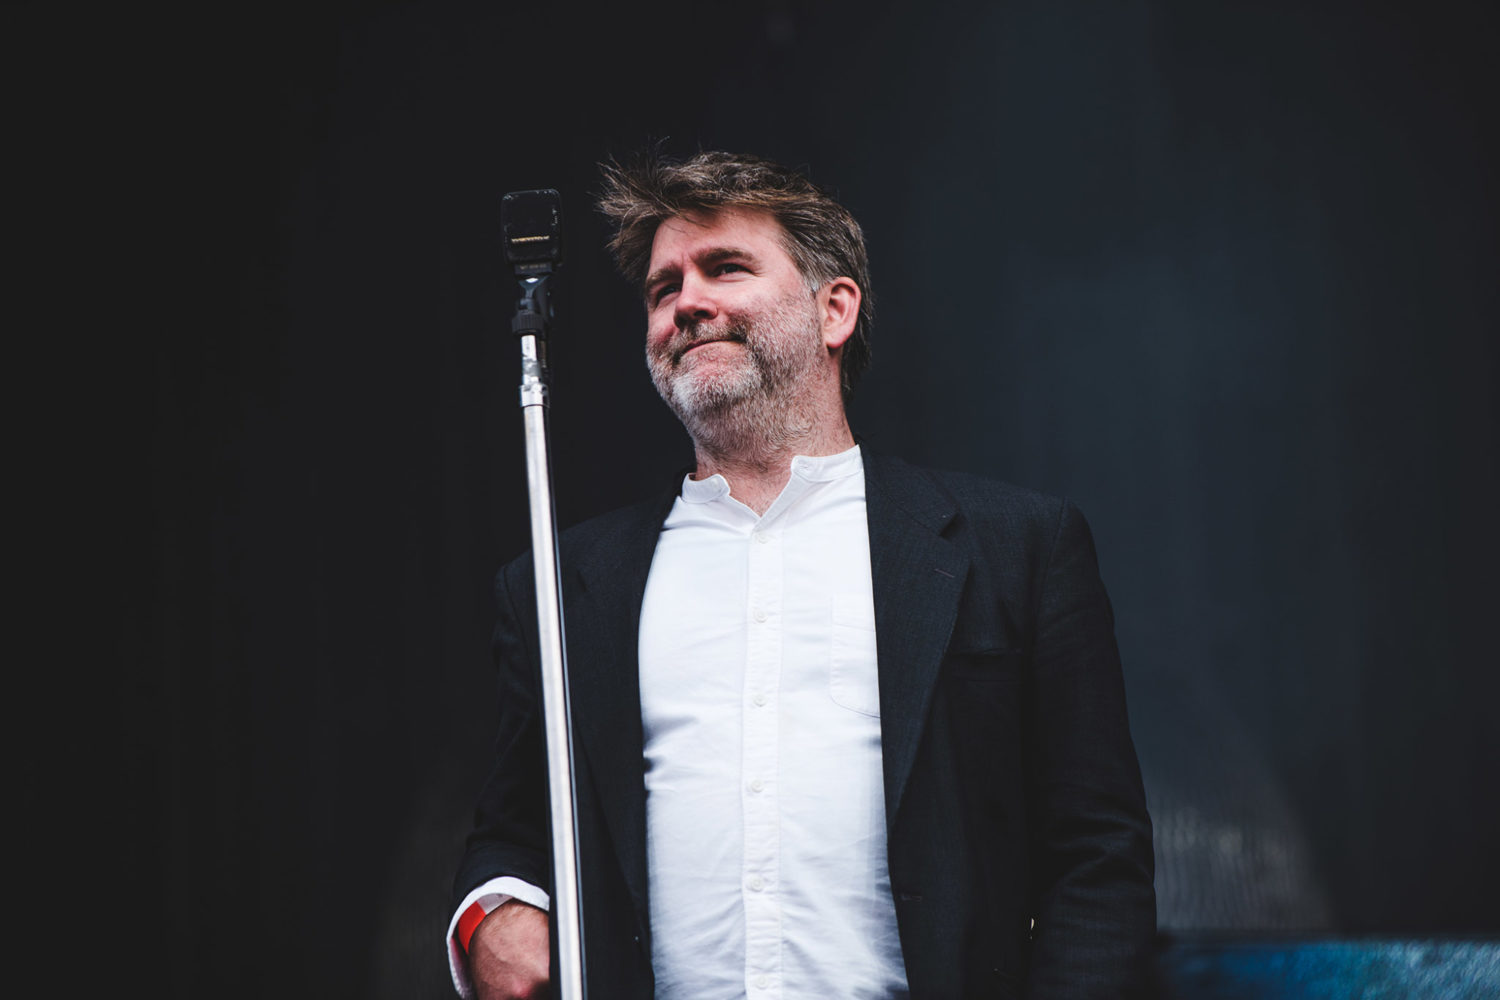 LCD Soundsystem, Björk, Yeah Yeah Yeahs, Lorde and more join All Points East